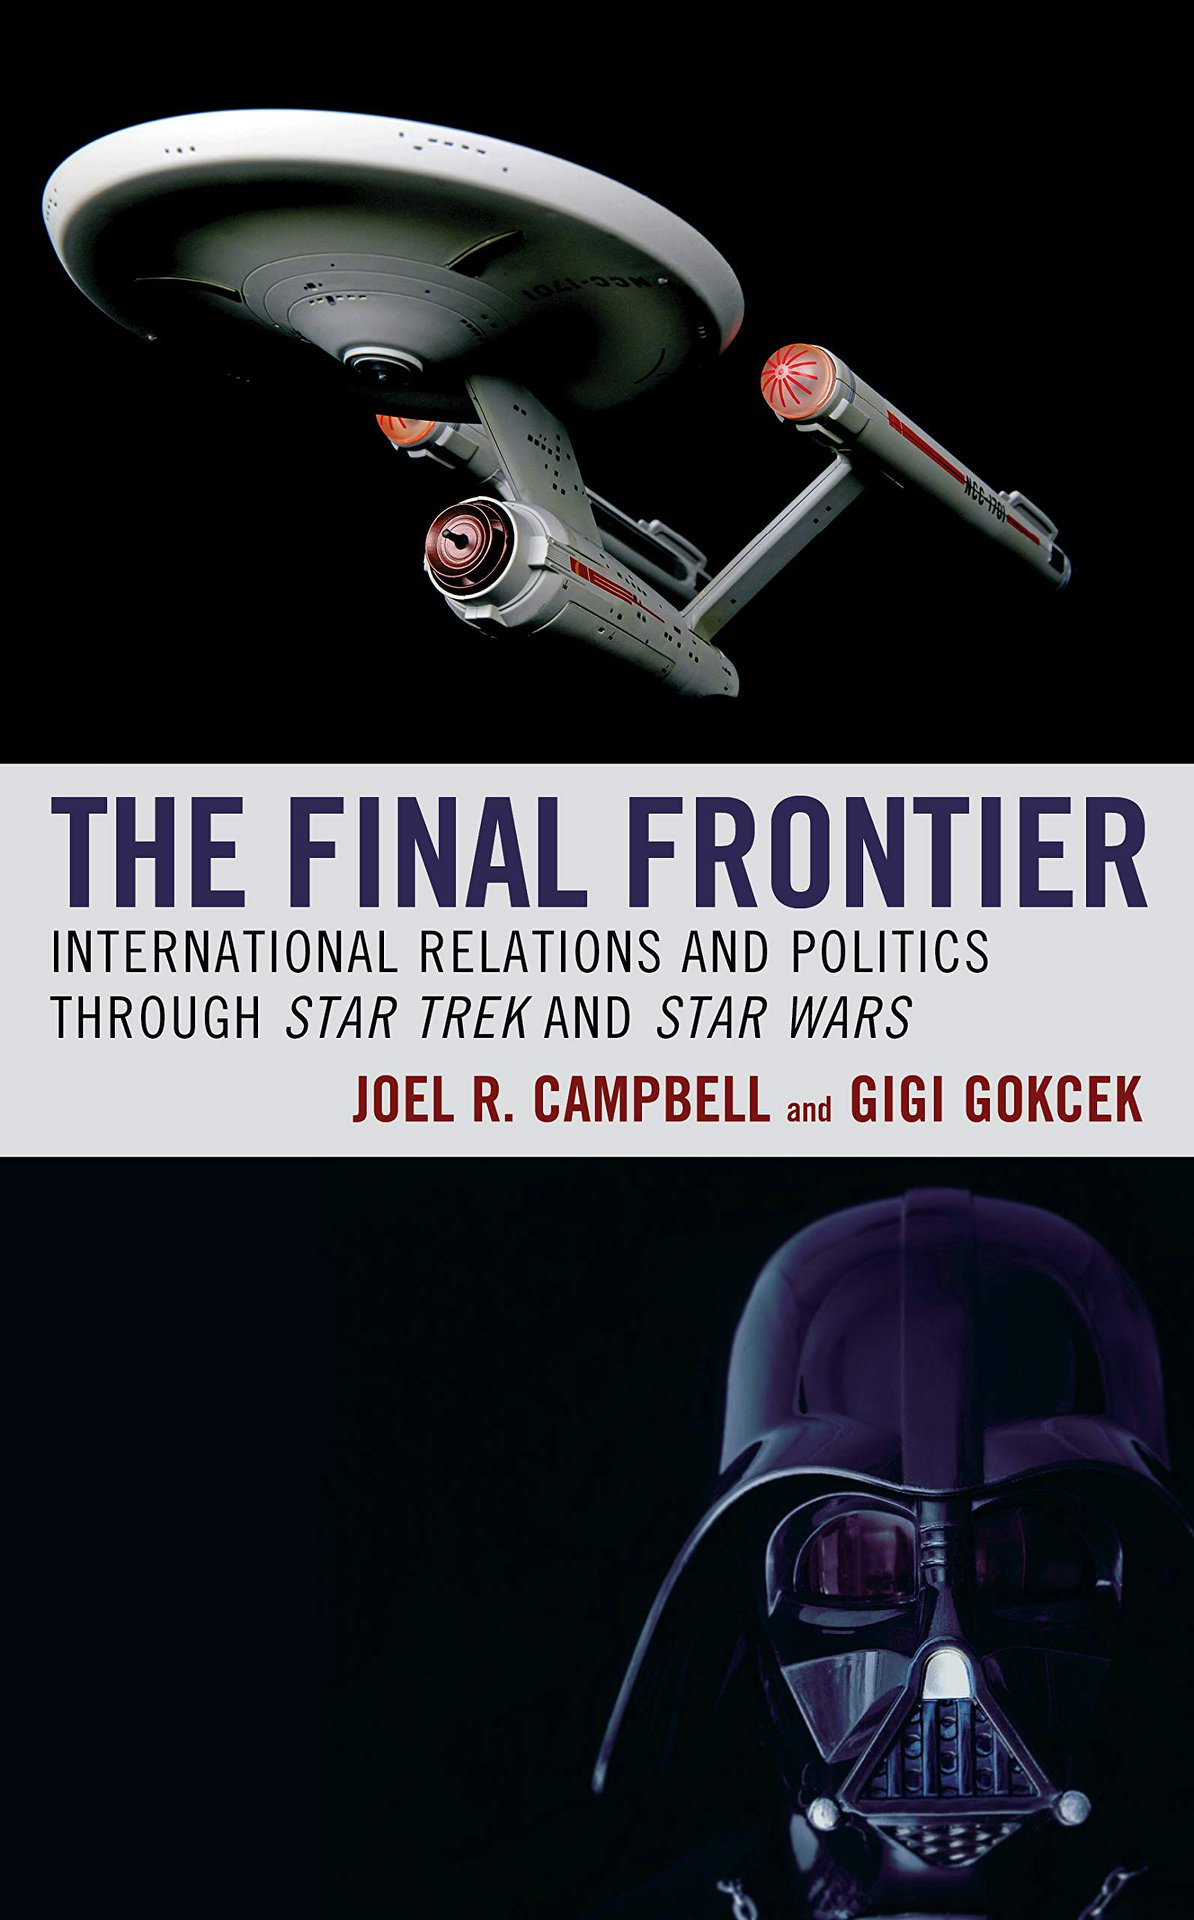 The Final Frontier: International Relations and Politics Through Star Trek and Star Wars (paperback)